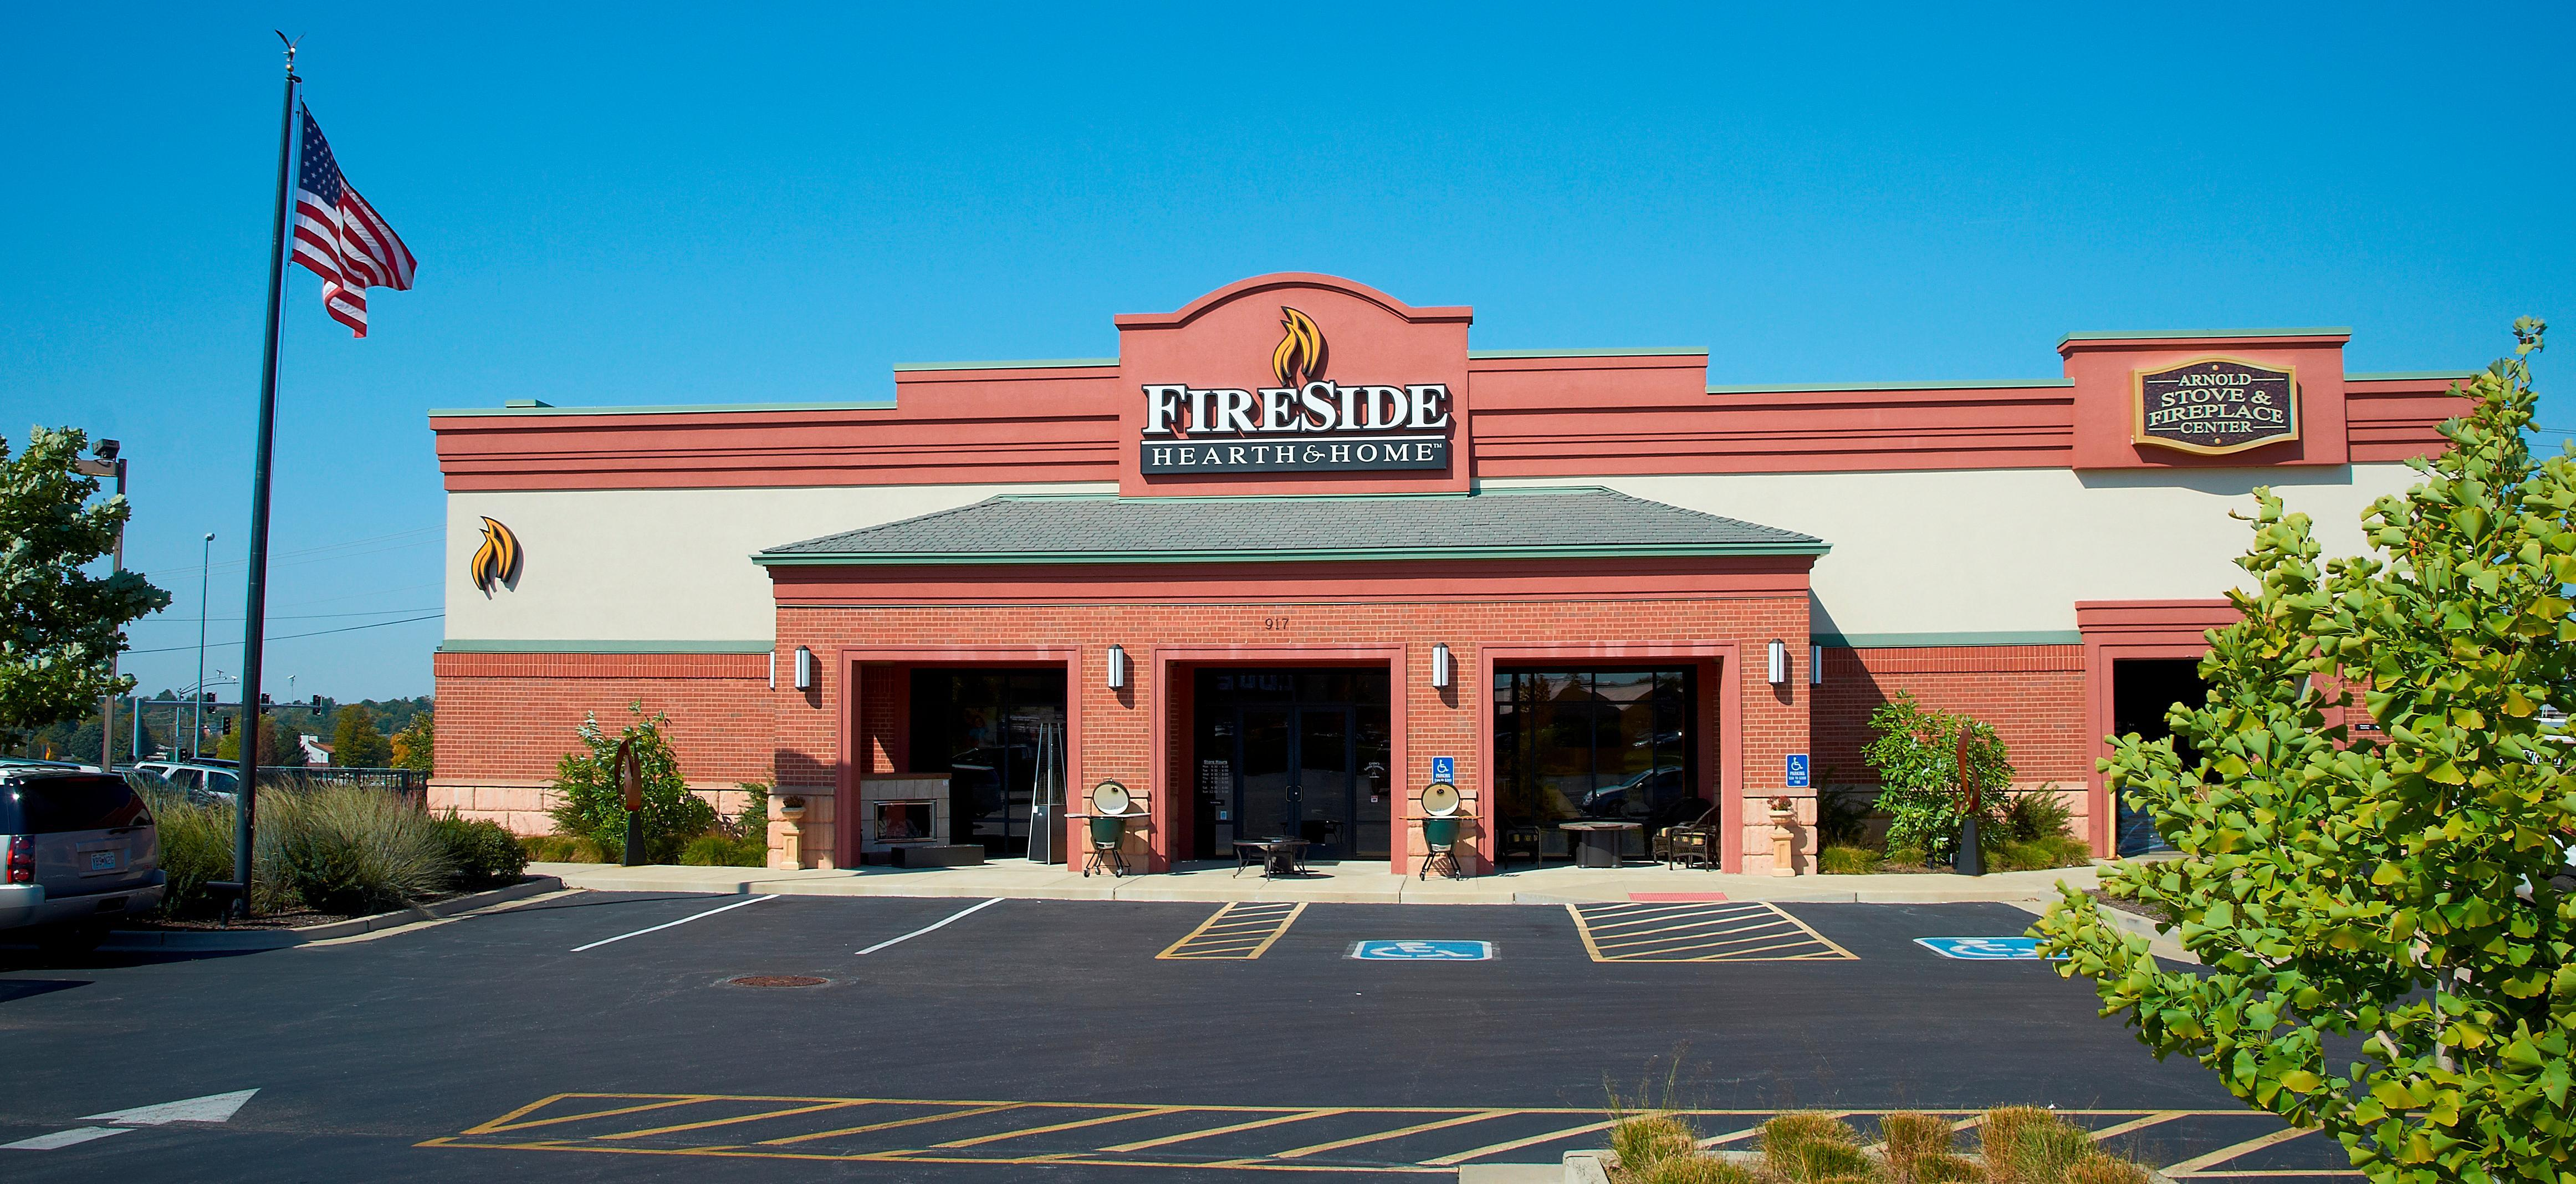 Arnold Stove & Fireplace Center Fireside Coupons near me